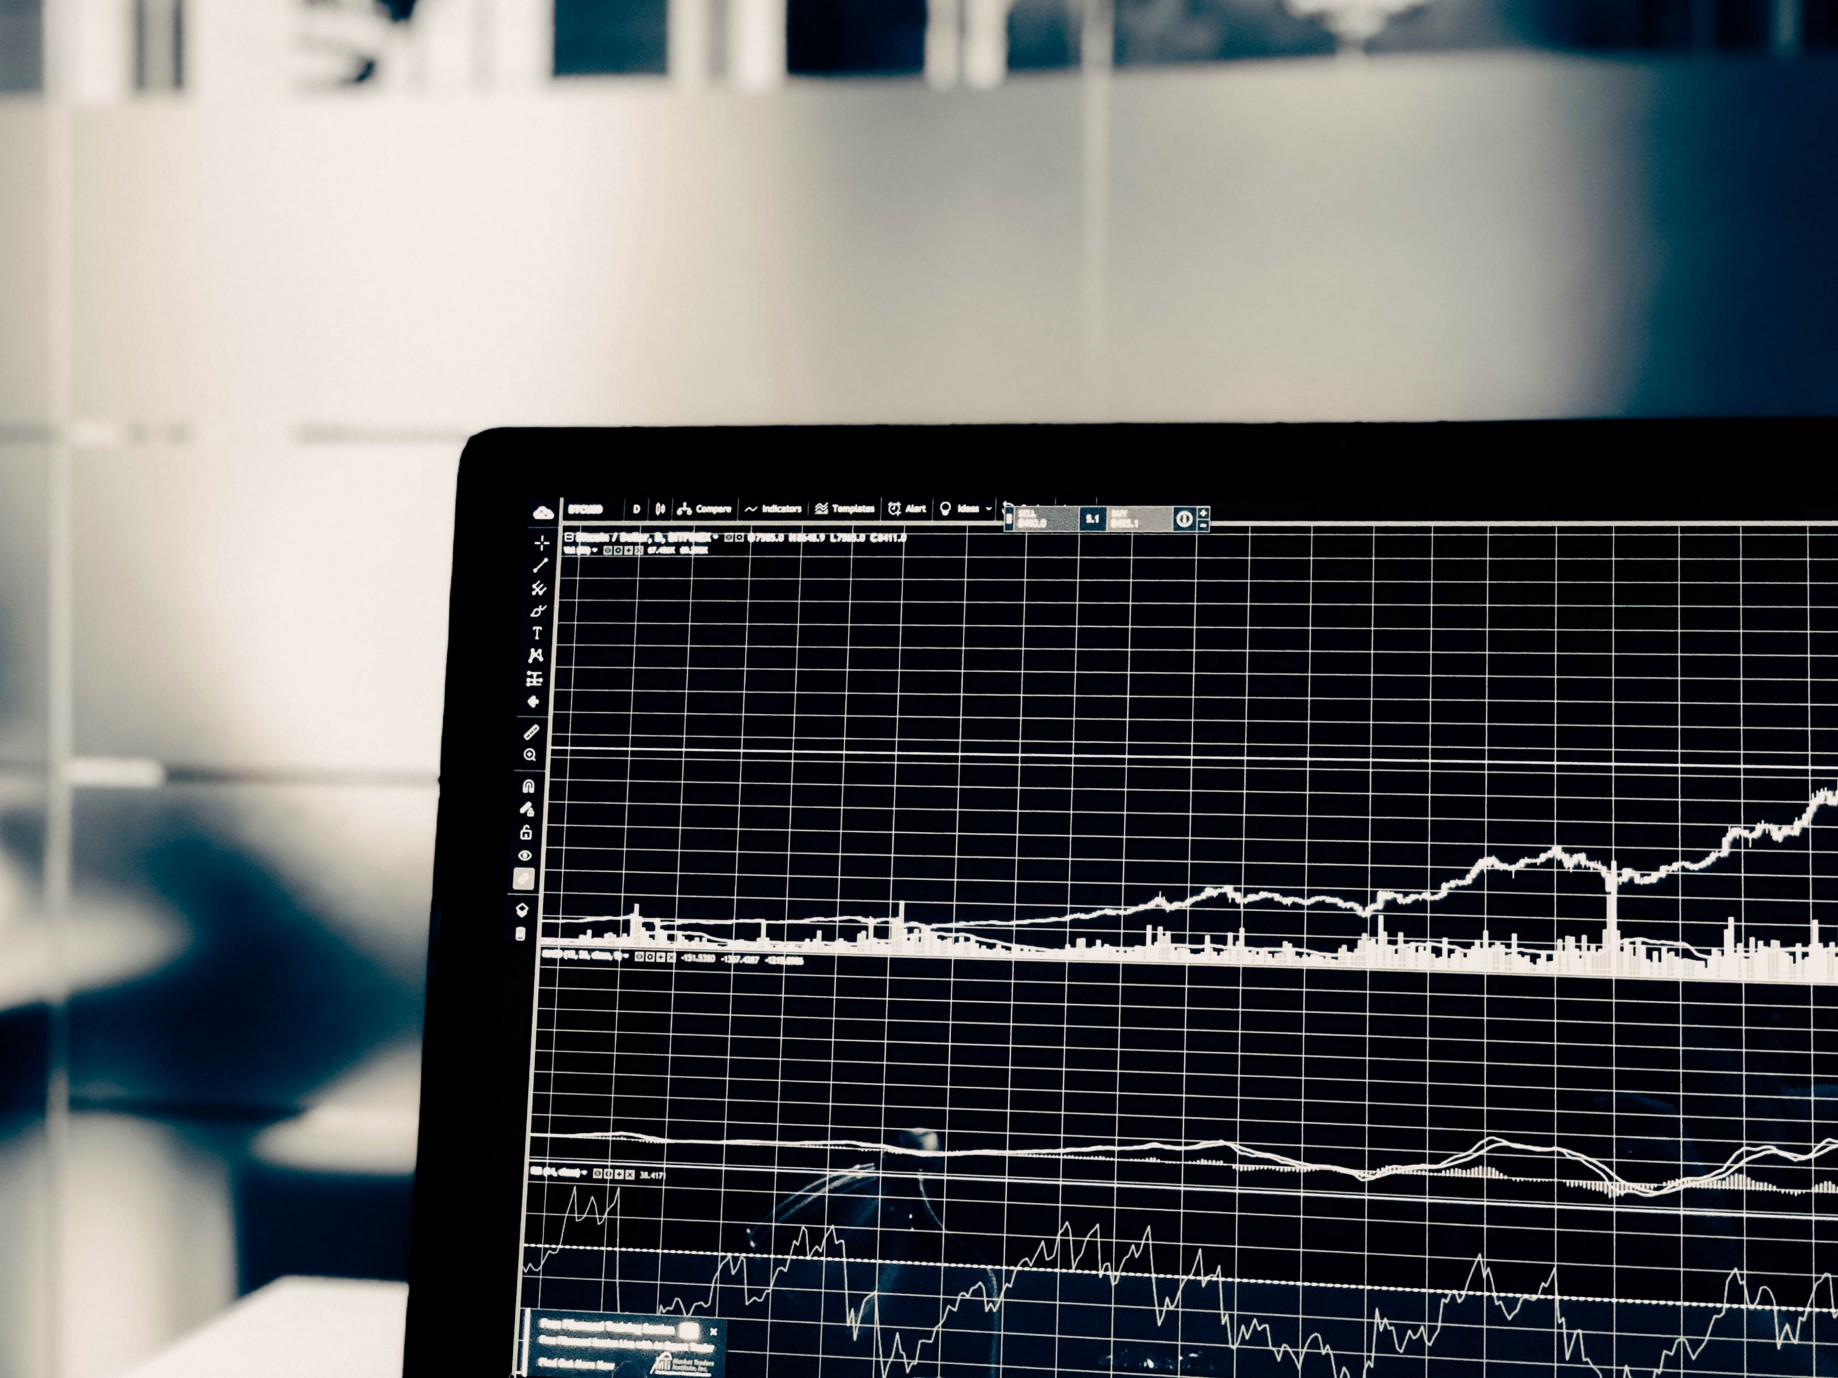 Assessing the risk of a trading strategy using Monte Carlo analysis in R